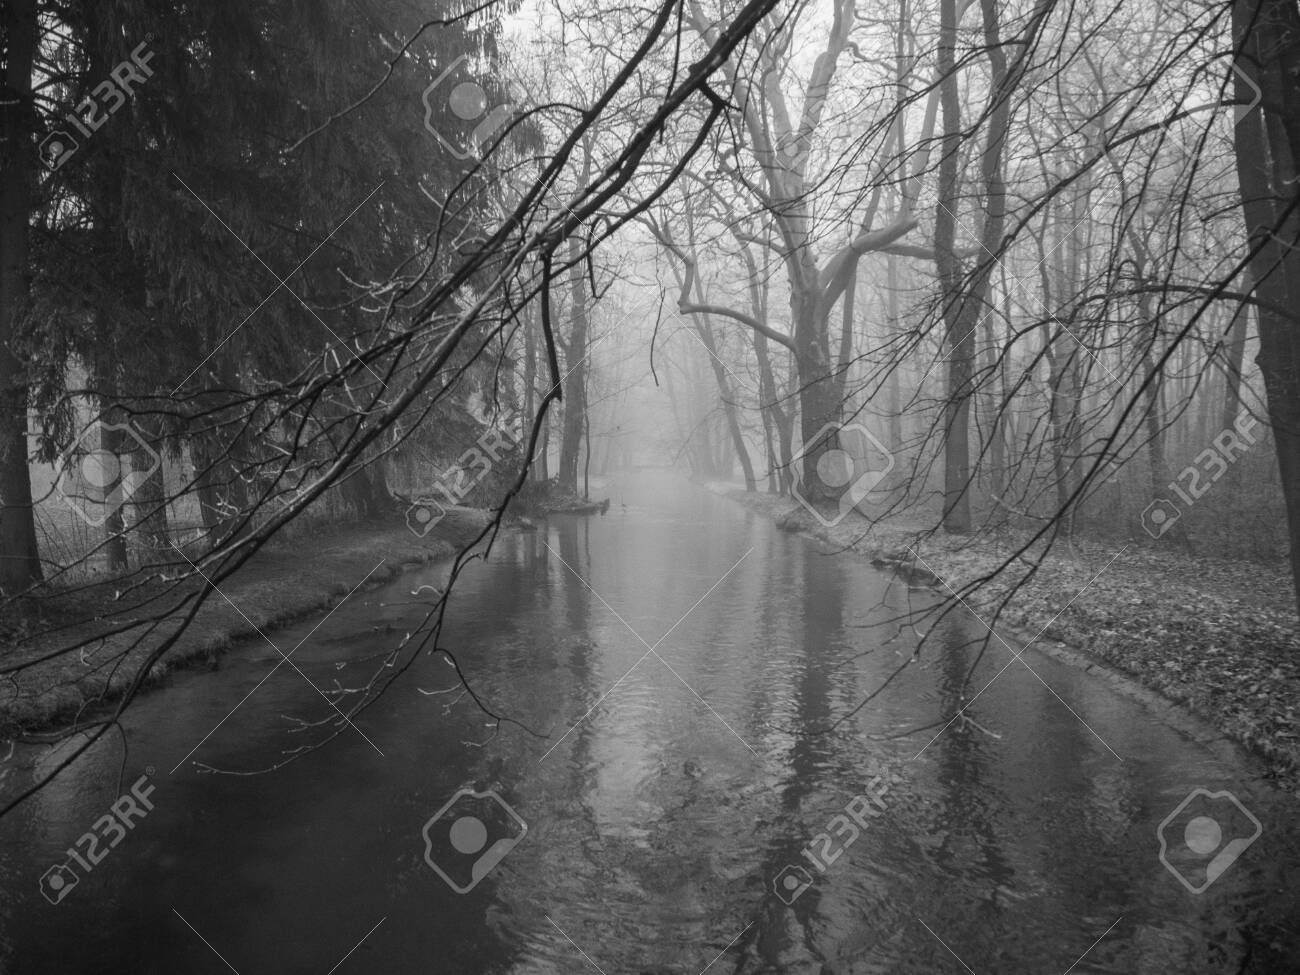 Small river in a forest on a foggy day - 140561537